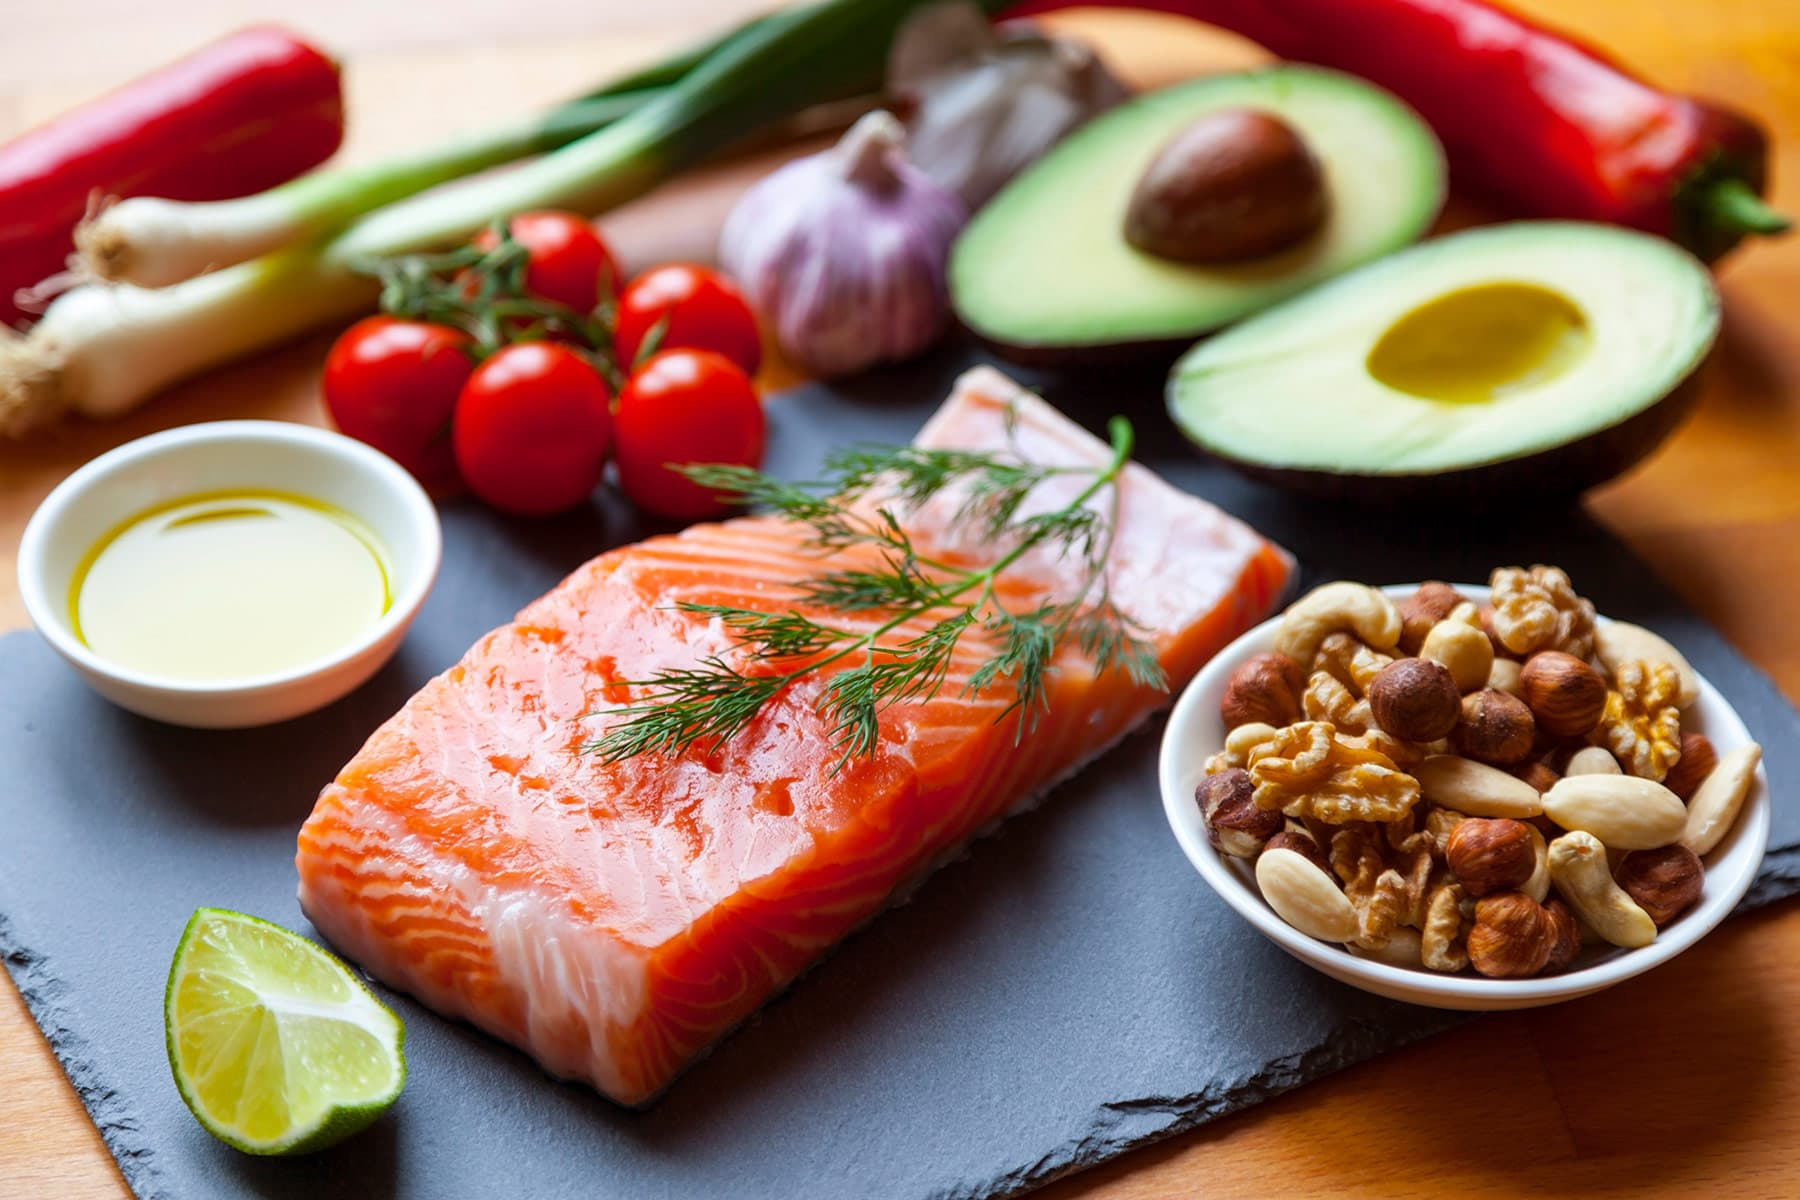 Mediterranean Diet Could Ward Off Dementia  - web md